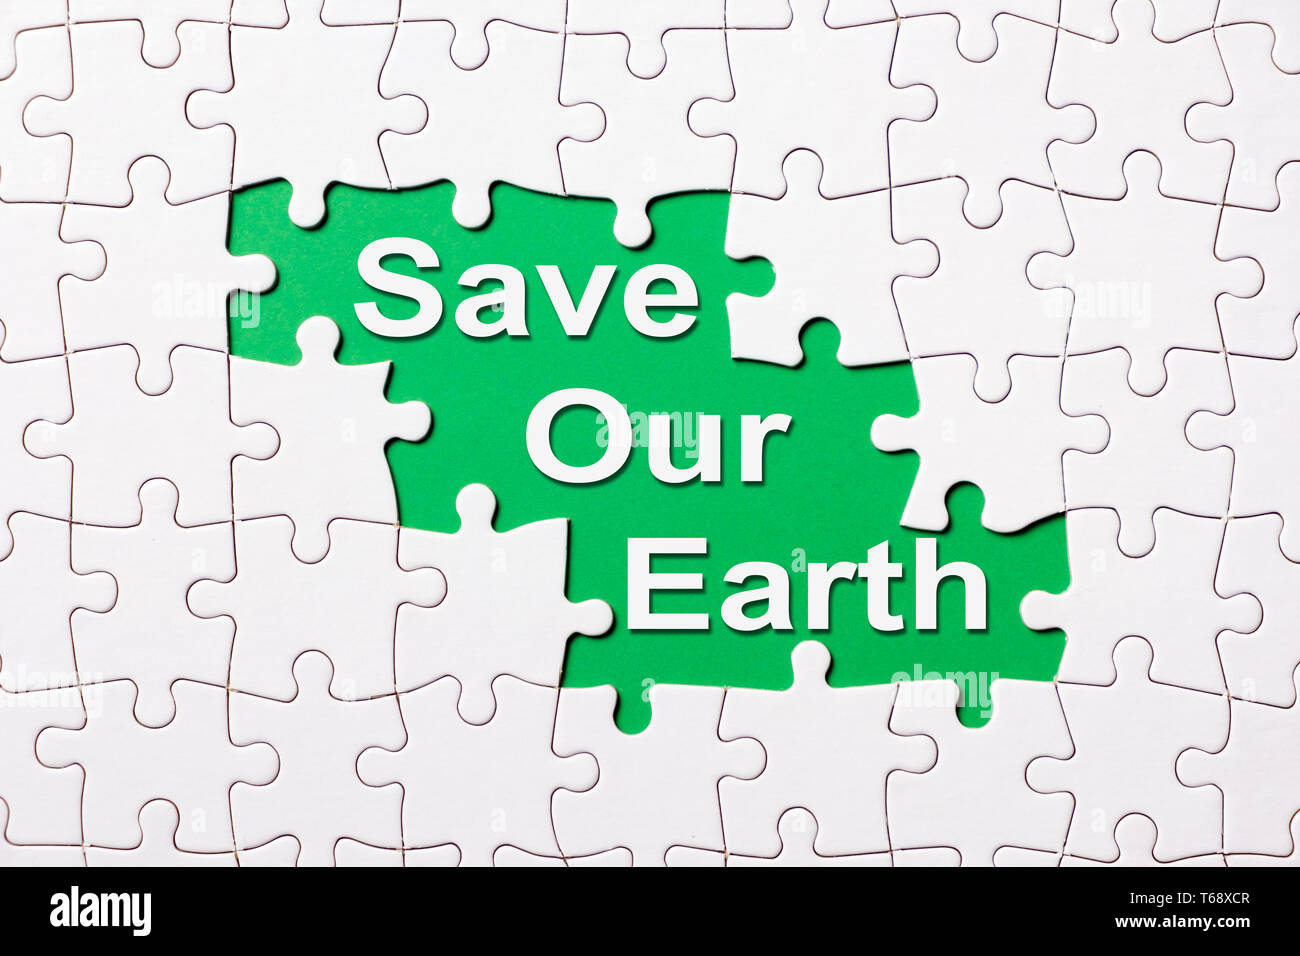 Save our earth word reveal under jigsaw puzzle Stock Photo